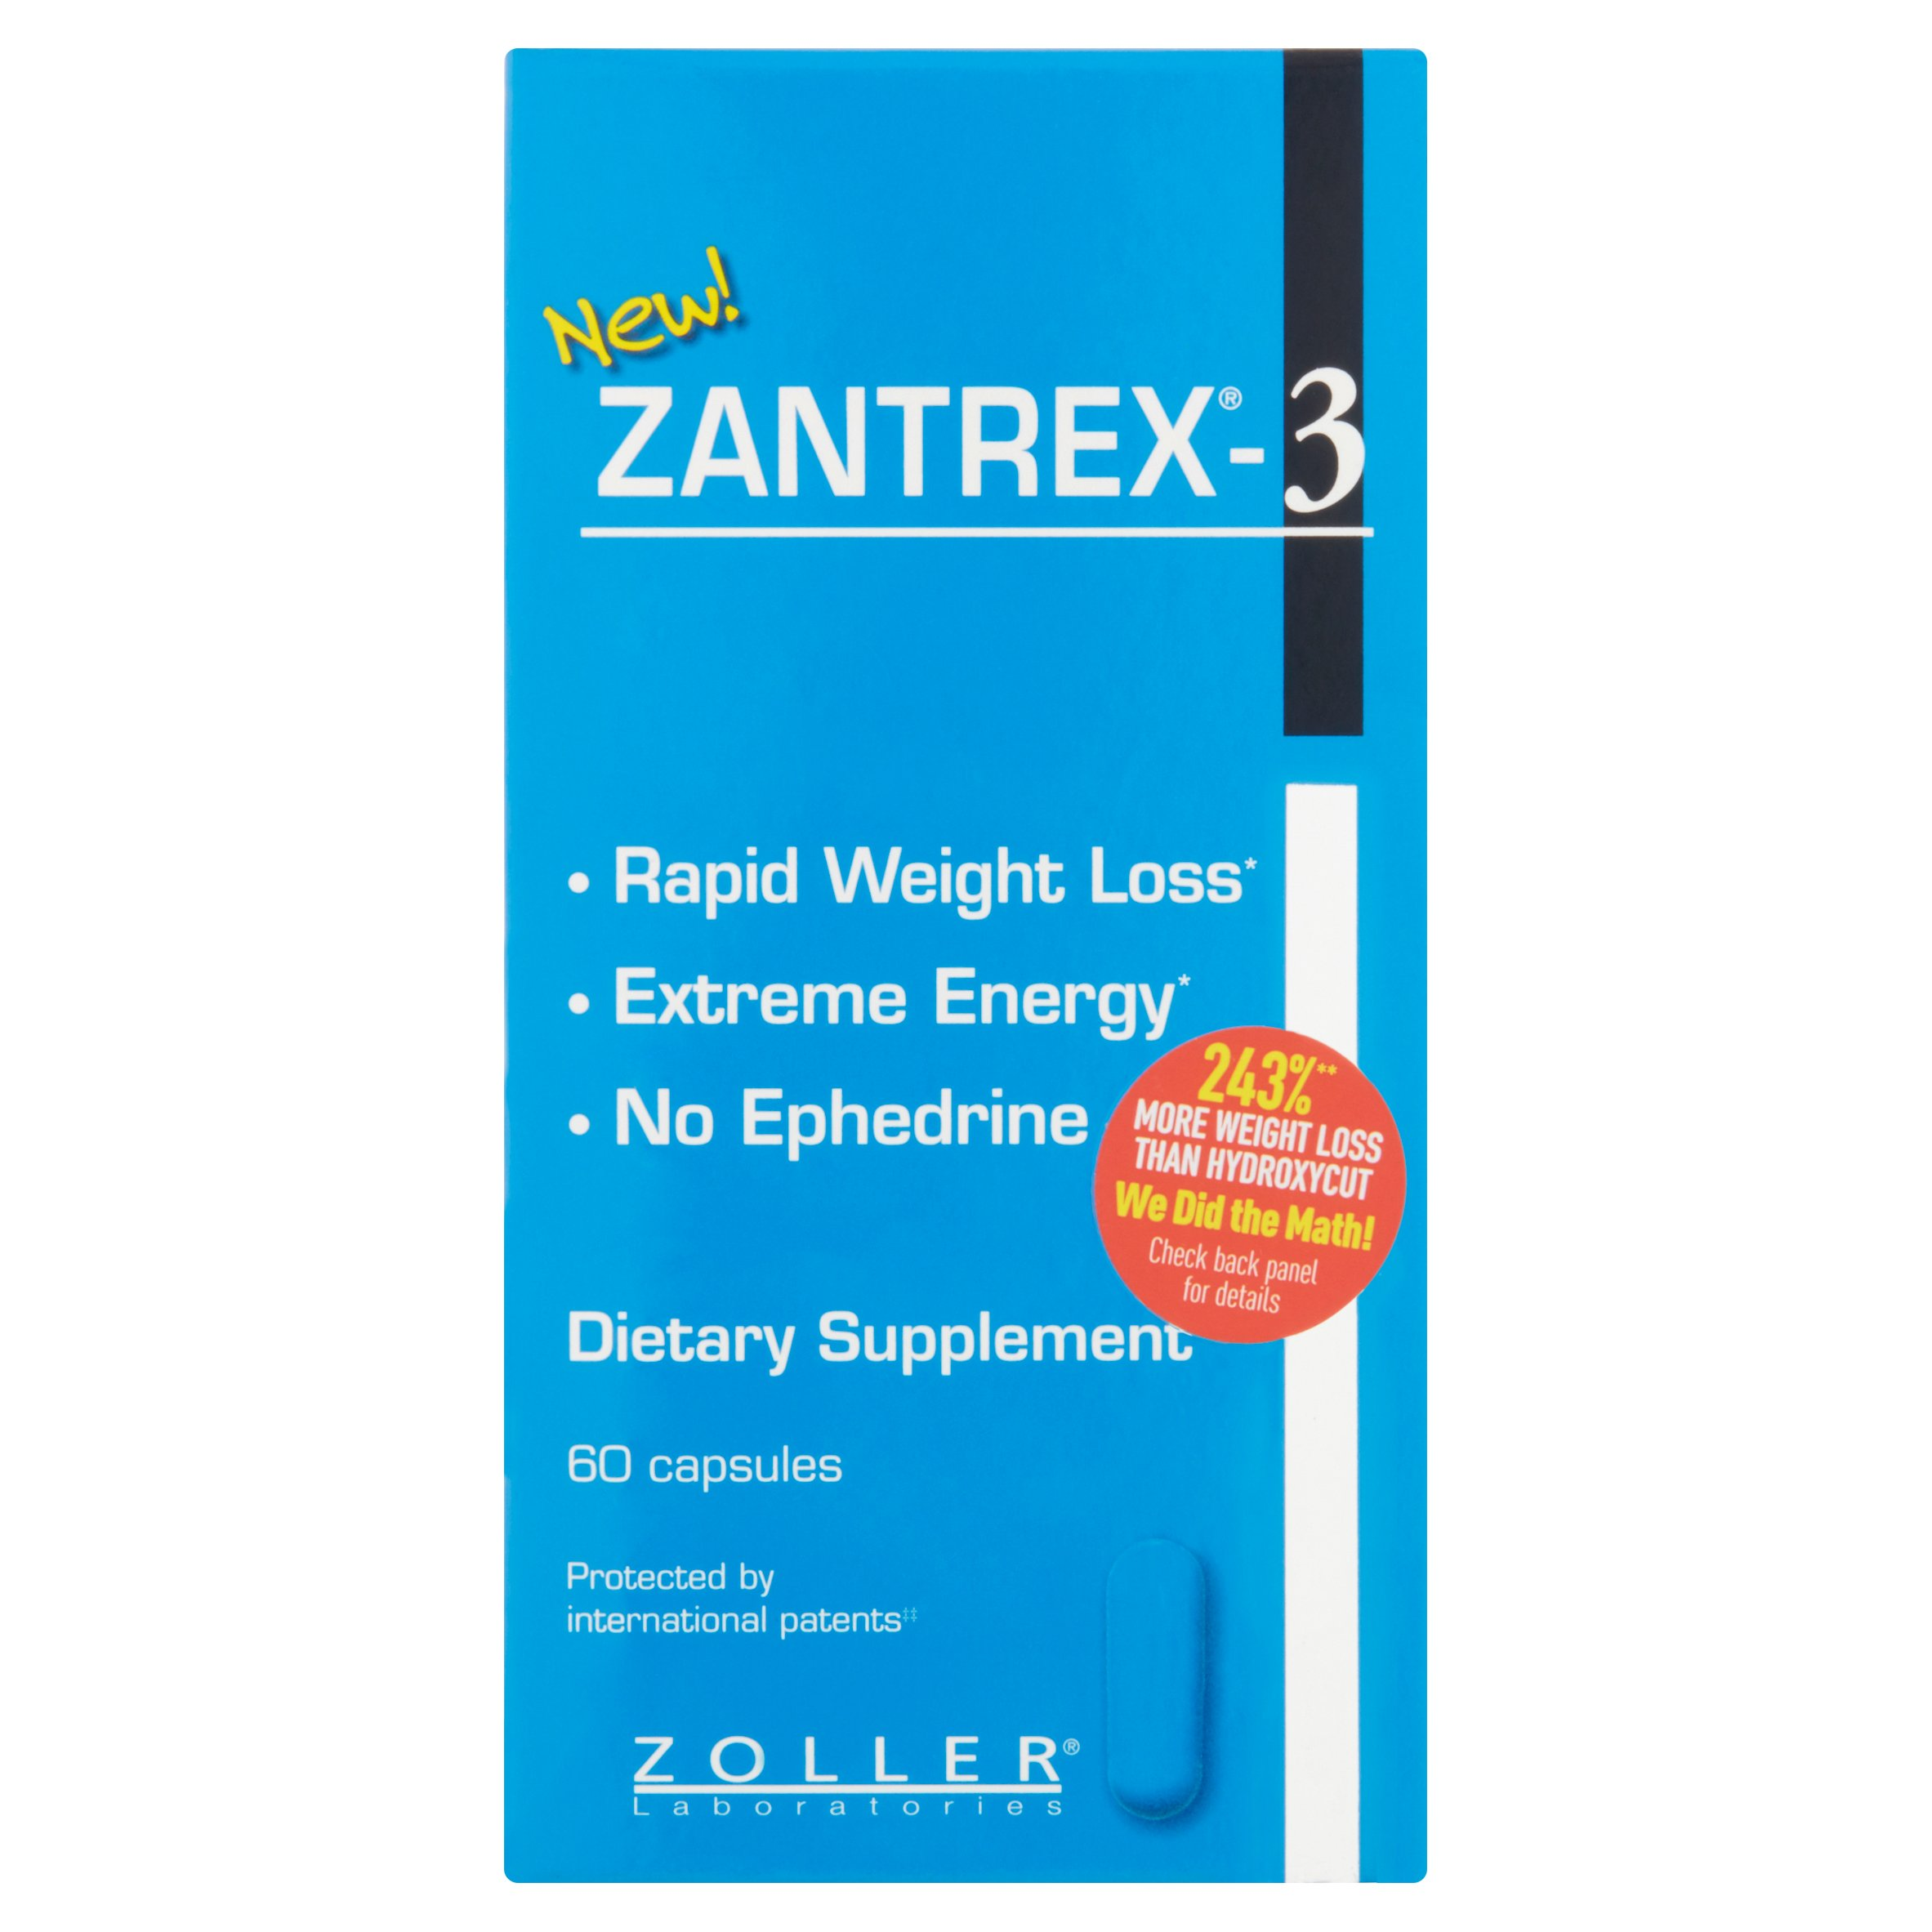 Zantrex-3 Weight Loss Pills for Extreme Energy, Ctules, 60 Ct